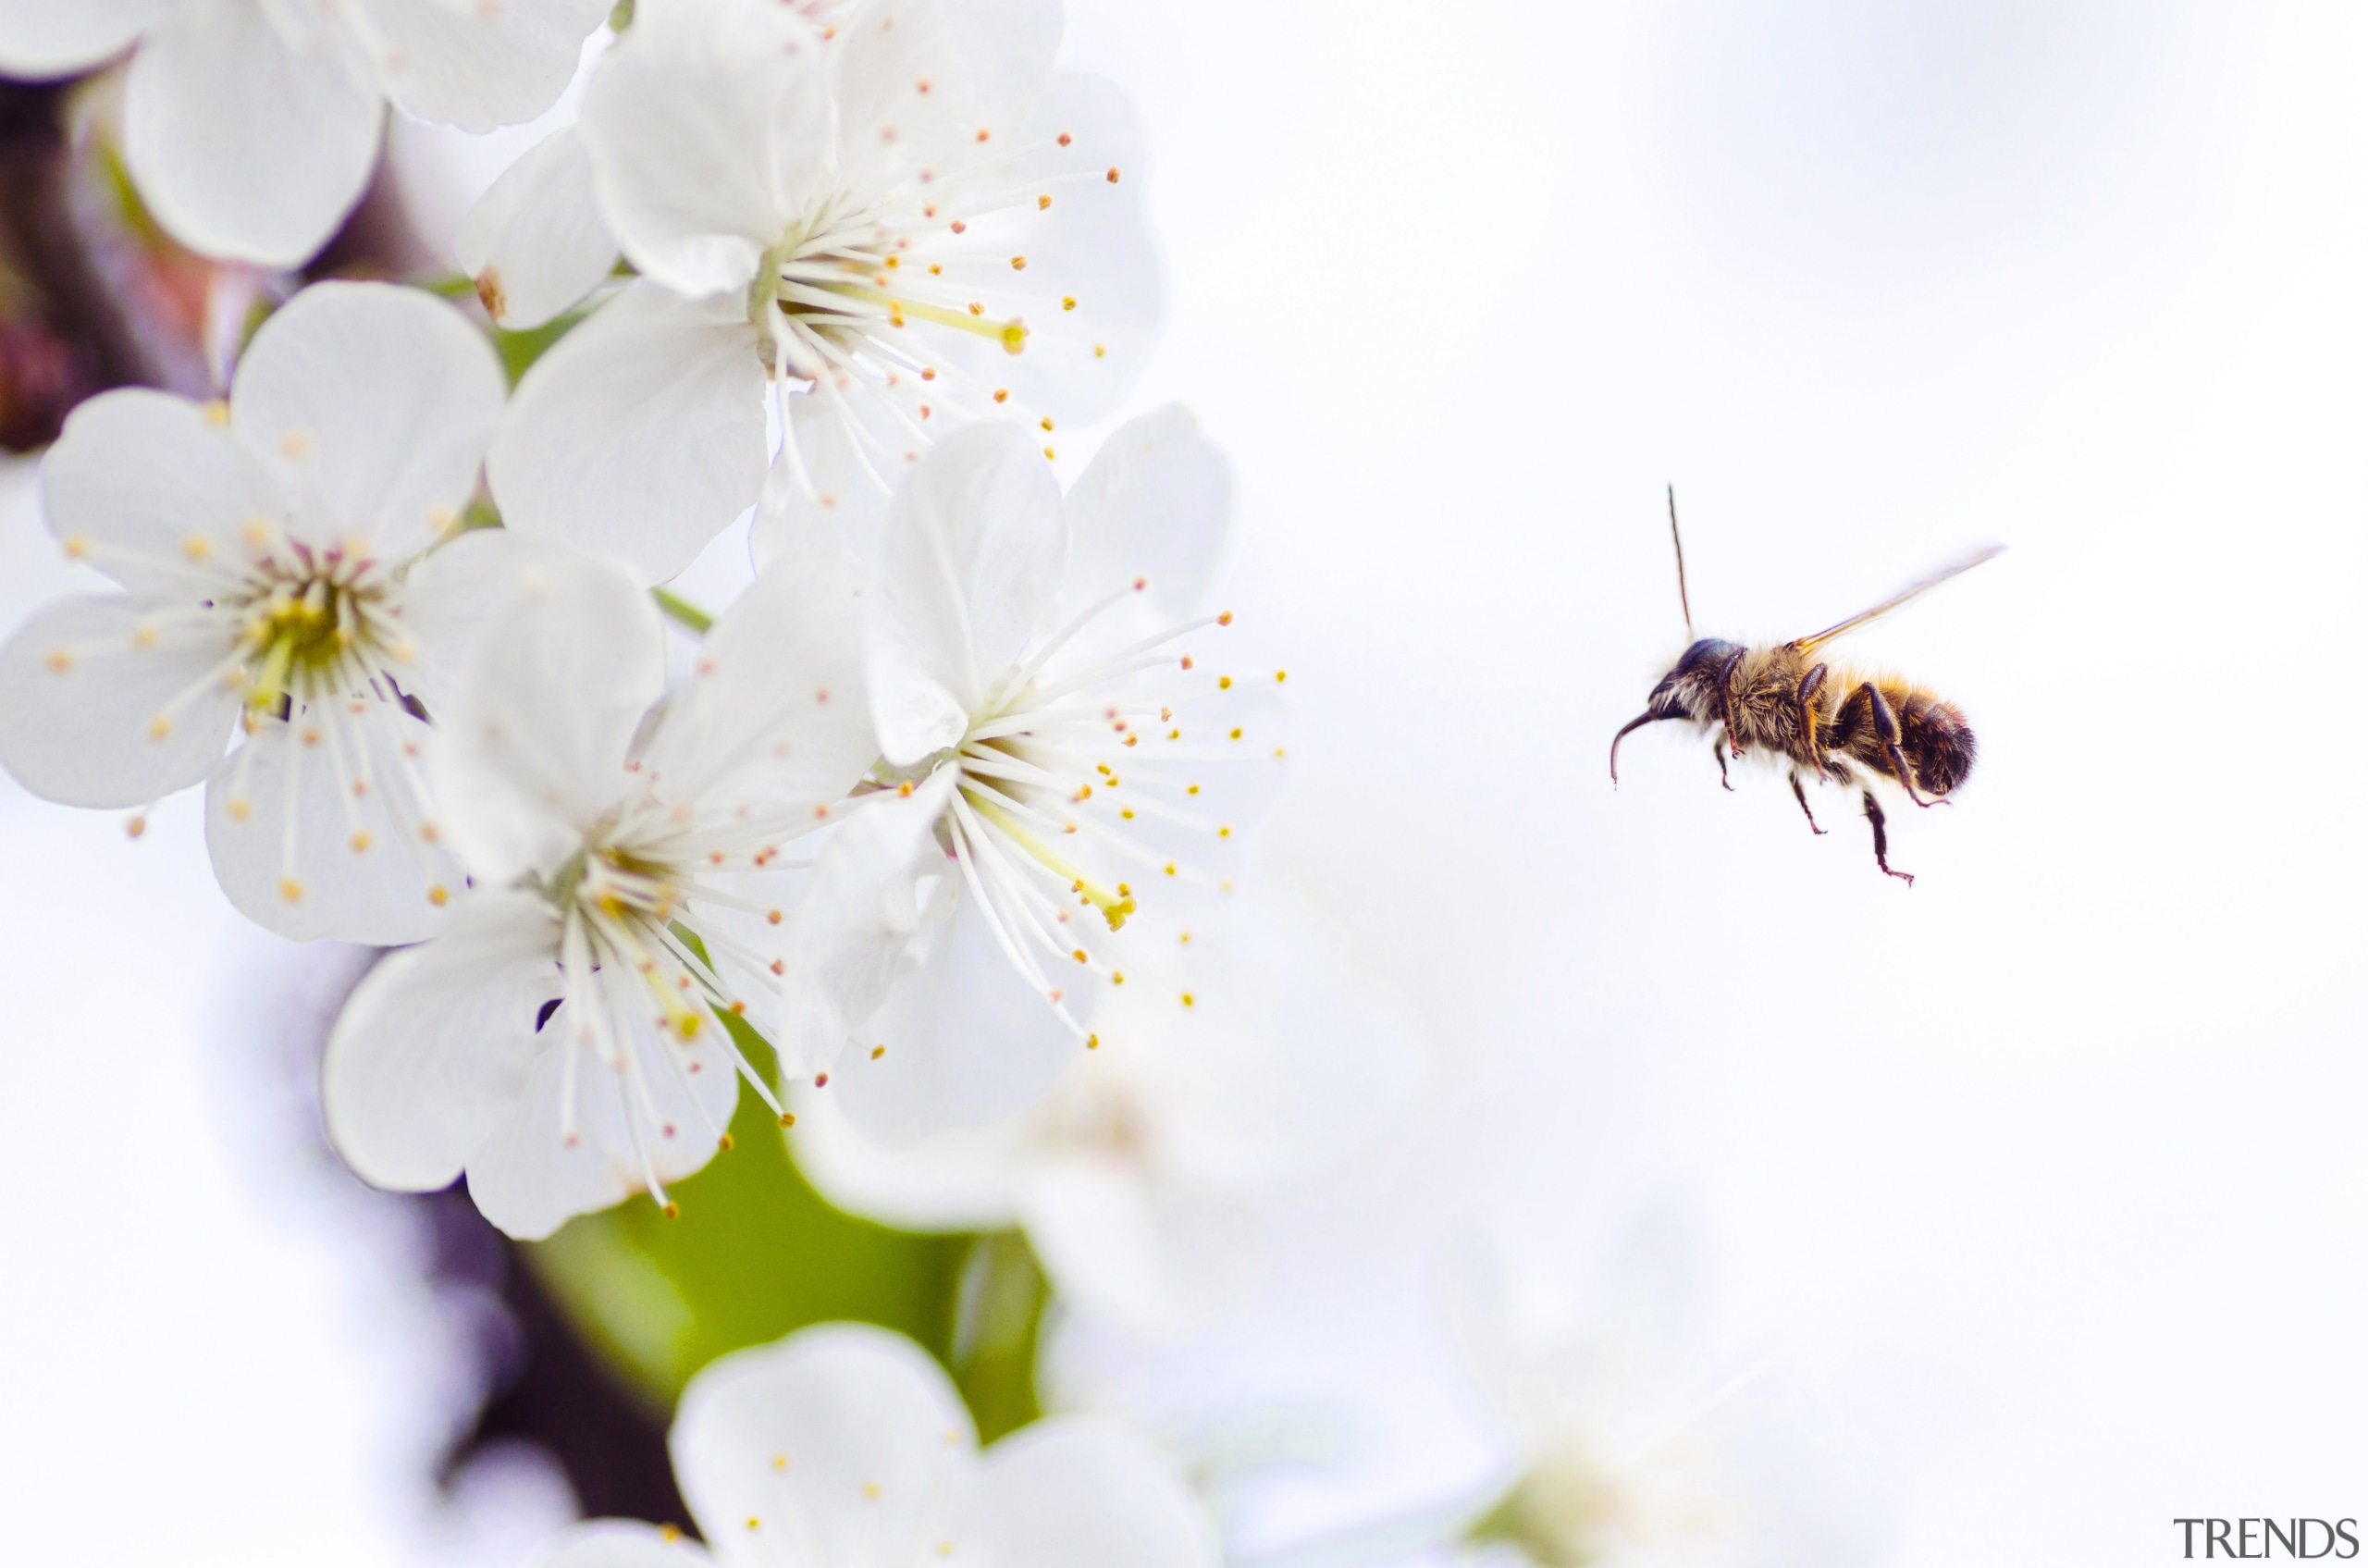 Lukas Blazek 261603 Unsplash - bee | blossom bee, blossom, cherry blossom, flower, honey bee, insect, macro photography, membrane winged insect, nectar, petal, pollen, pollinator, spring, white